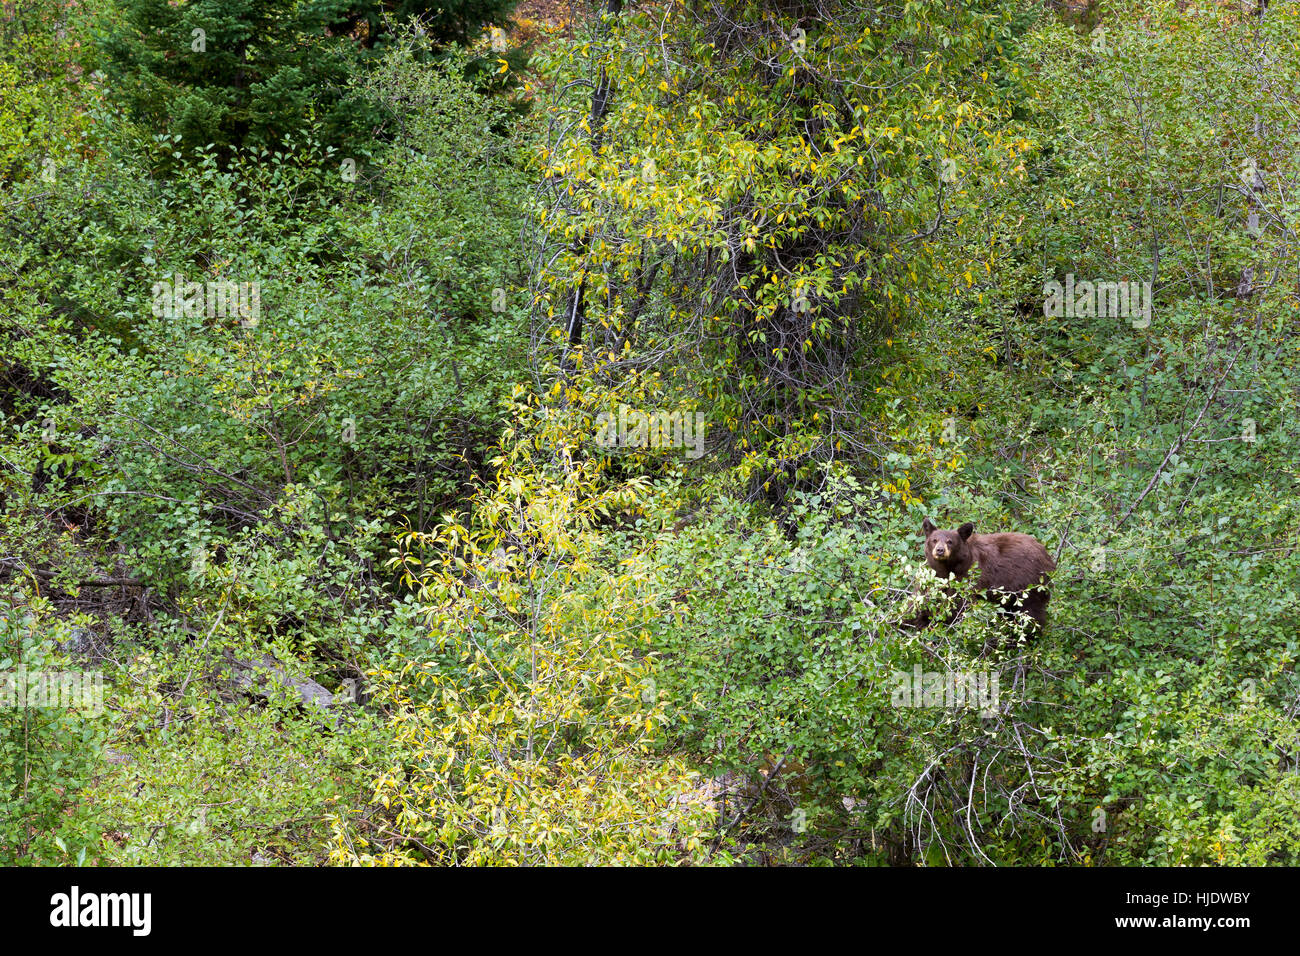 A black bear pausing from eating hawthorne berries along the Phelps Lake Trail. Grand Teton National Park, Wyoming - Stock Image